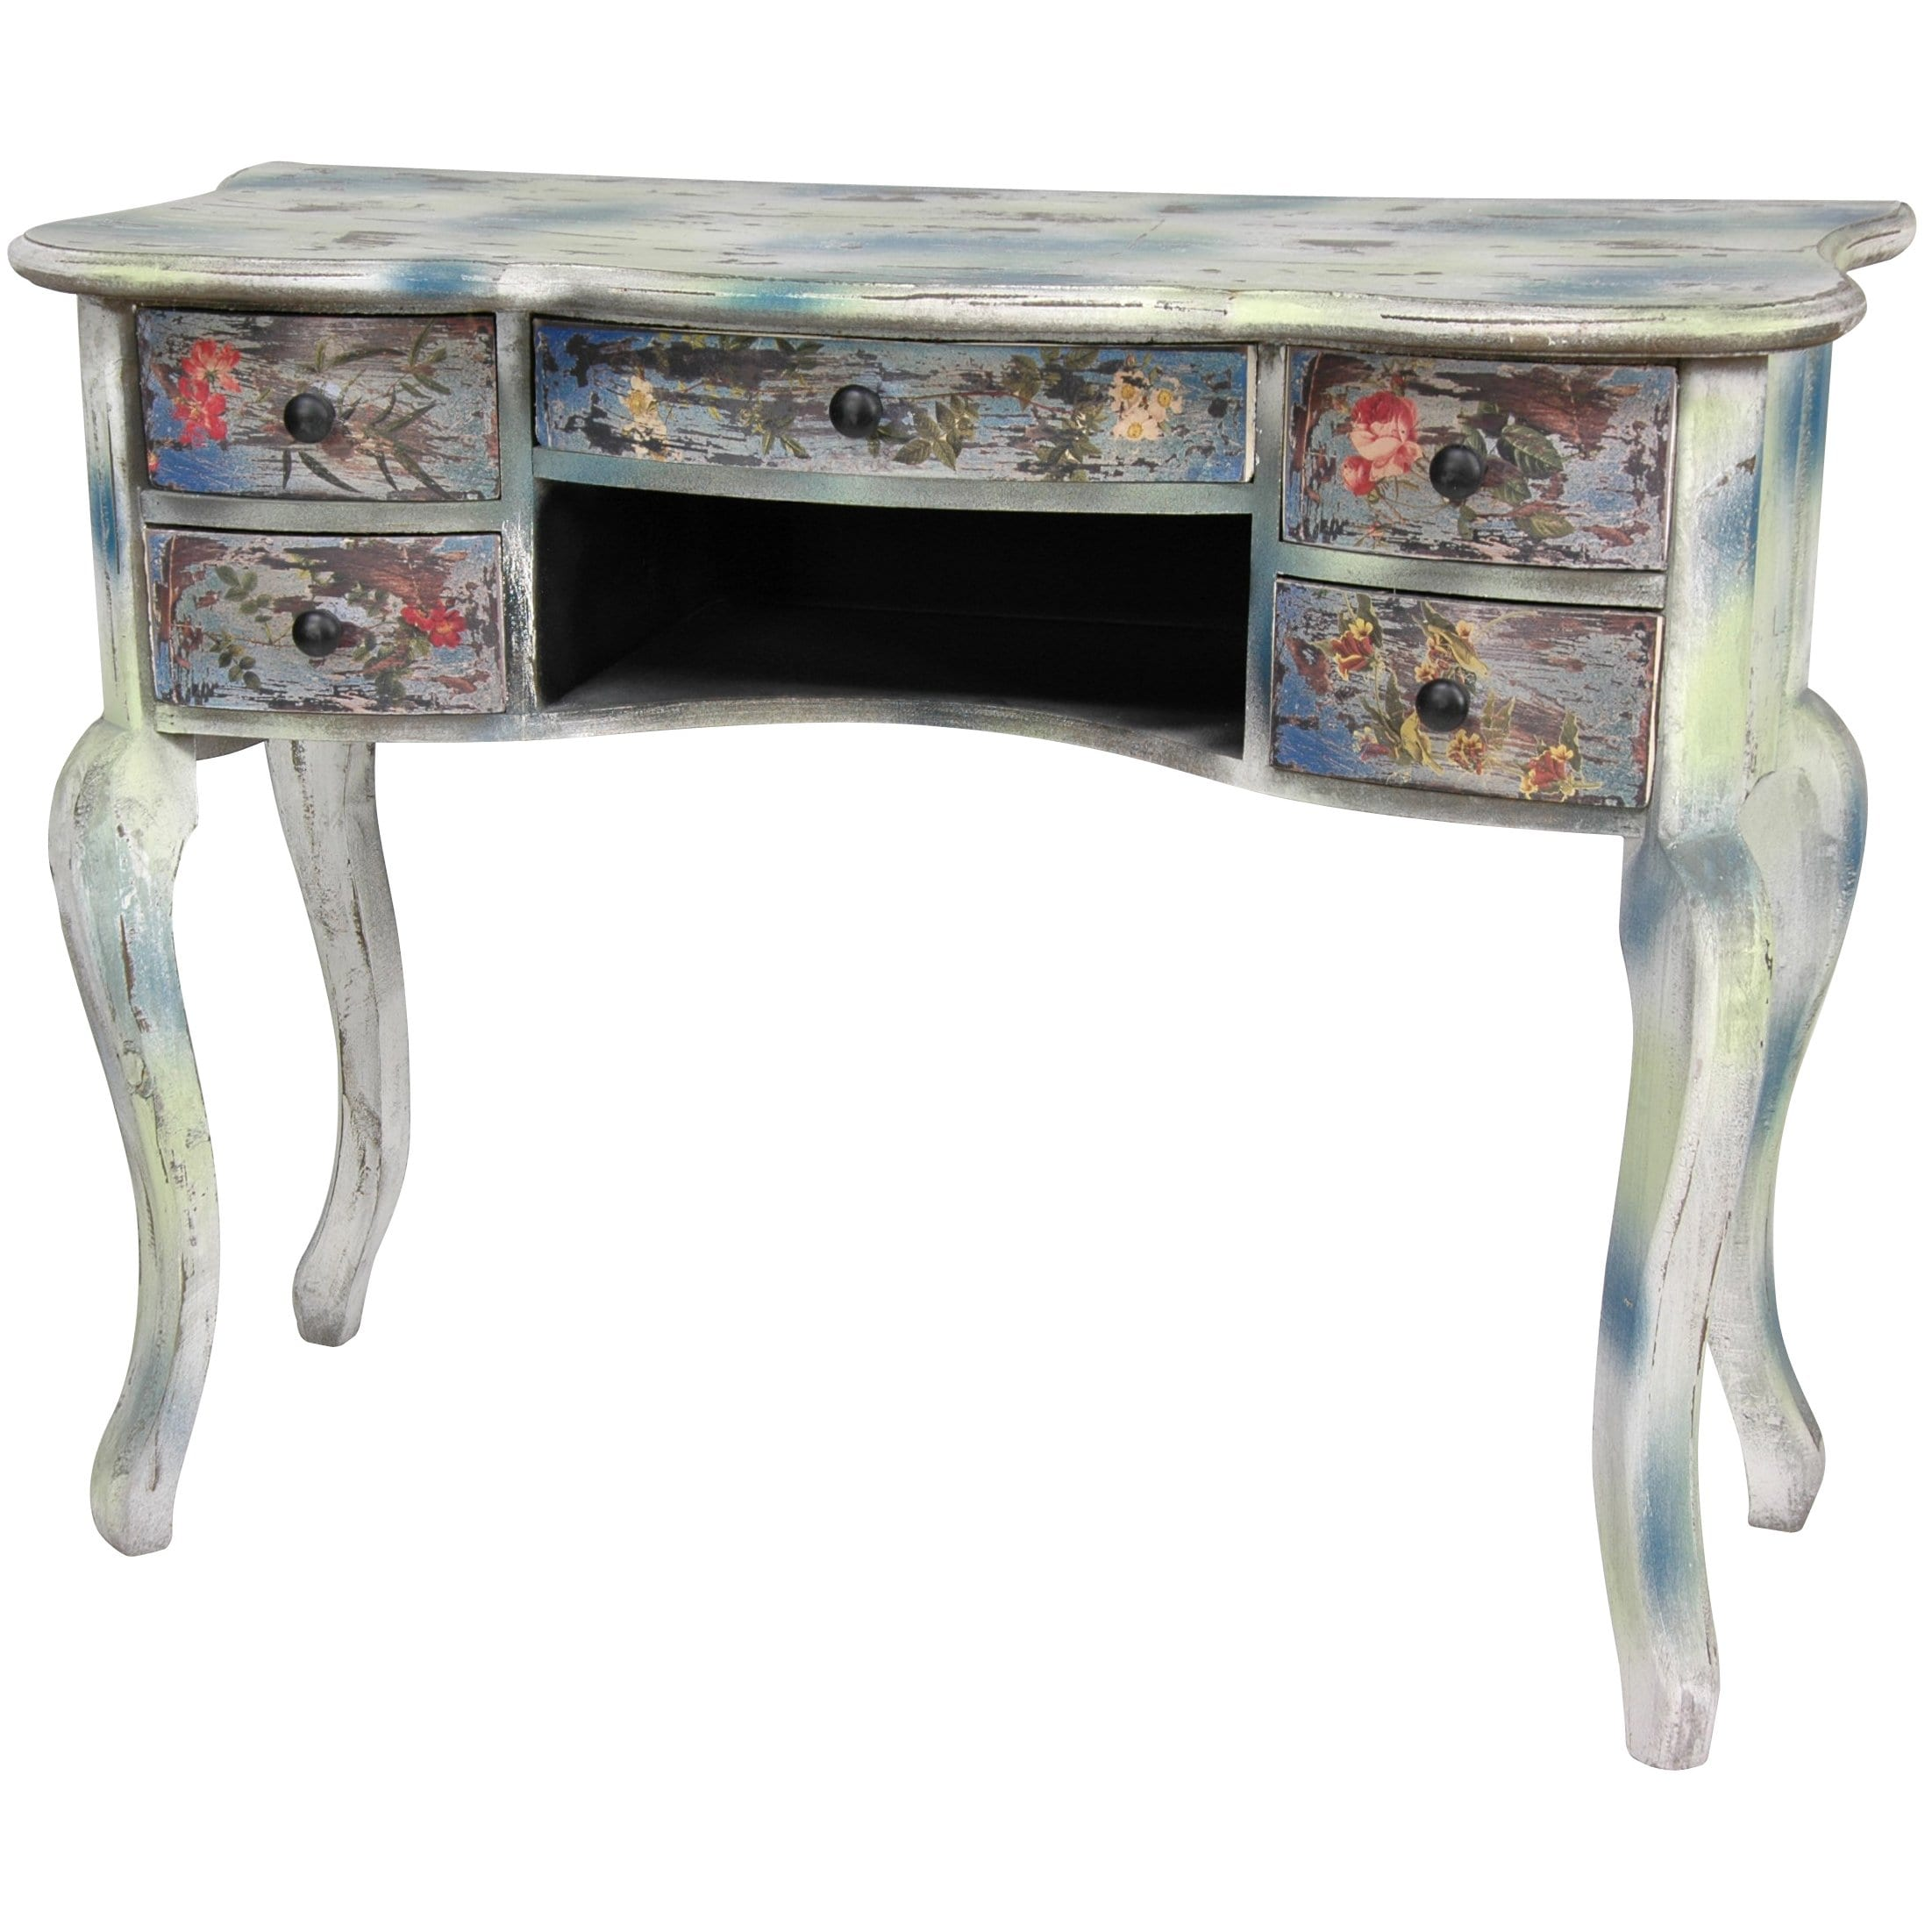 #4C6279  Urban Sustainable Sheesham Wood Two Shelf Contemporary Writing Desk with 2203x2203 px of Best Black Distressed Desk 22032203 image @ avoidforclosure.info